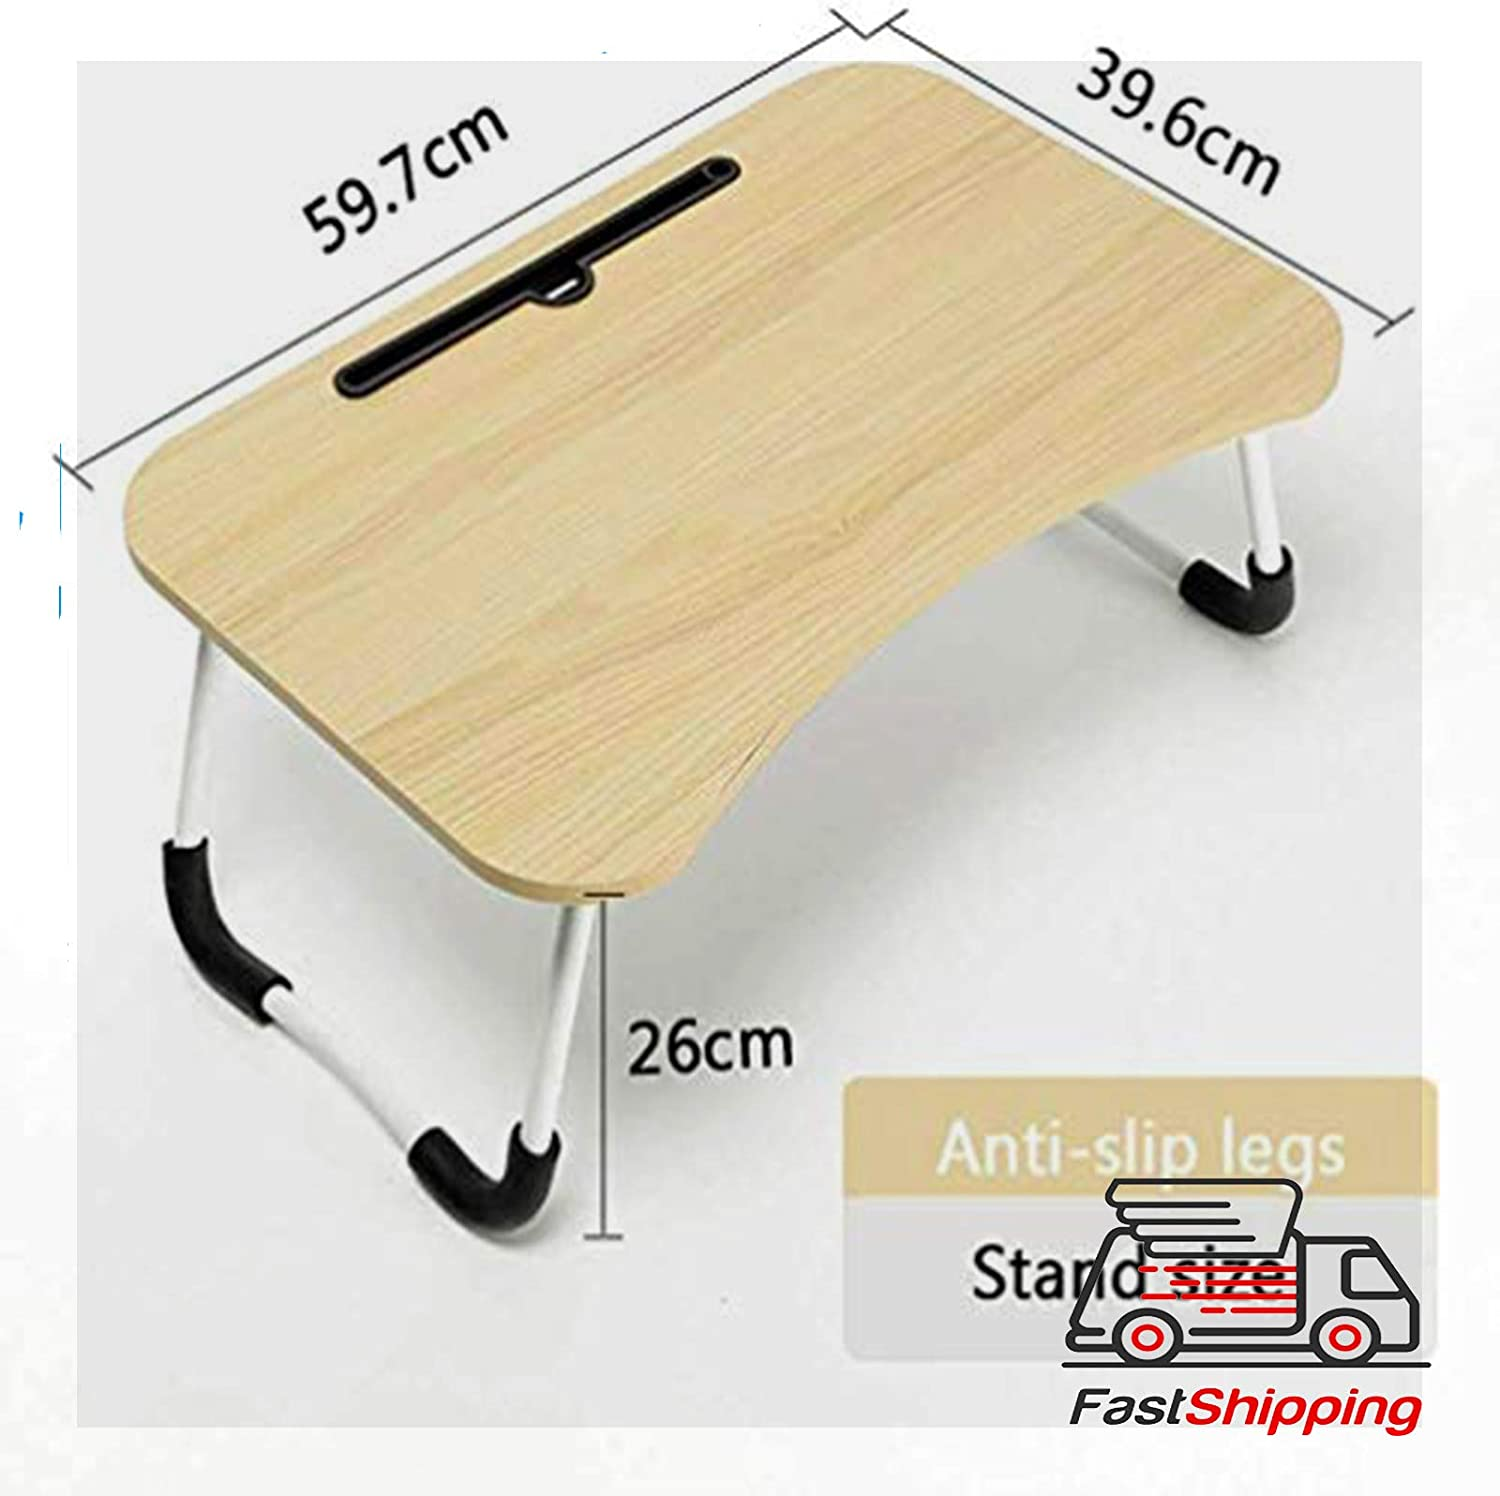 Laptop Lapdesk Small Desk Folding Small Dormitory Table Perfect for Watching Movie on Bed Or As Personal Dinning Table Foldable Bed Tray,Portable Lap Desk with Phone Slots Notebook Table Dorm Desk